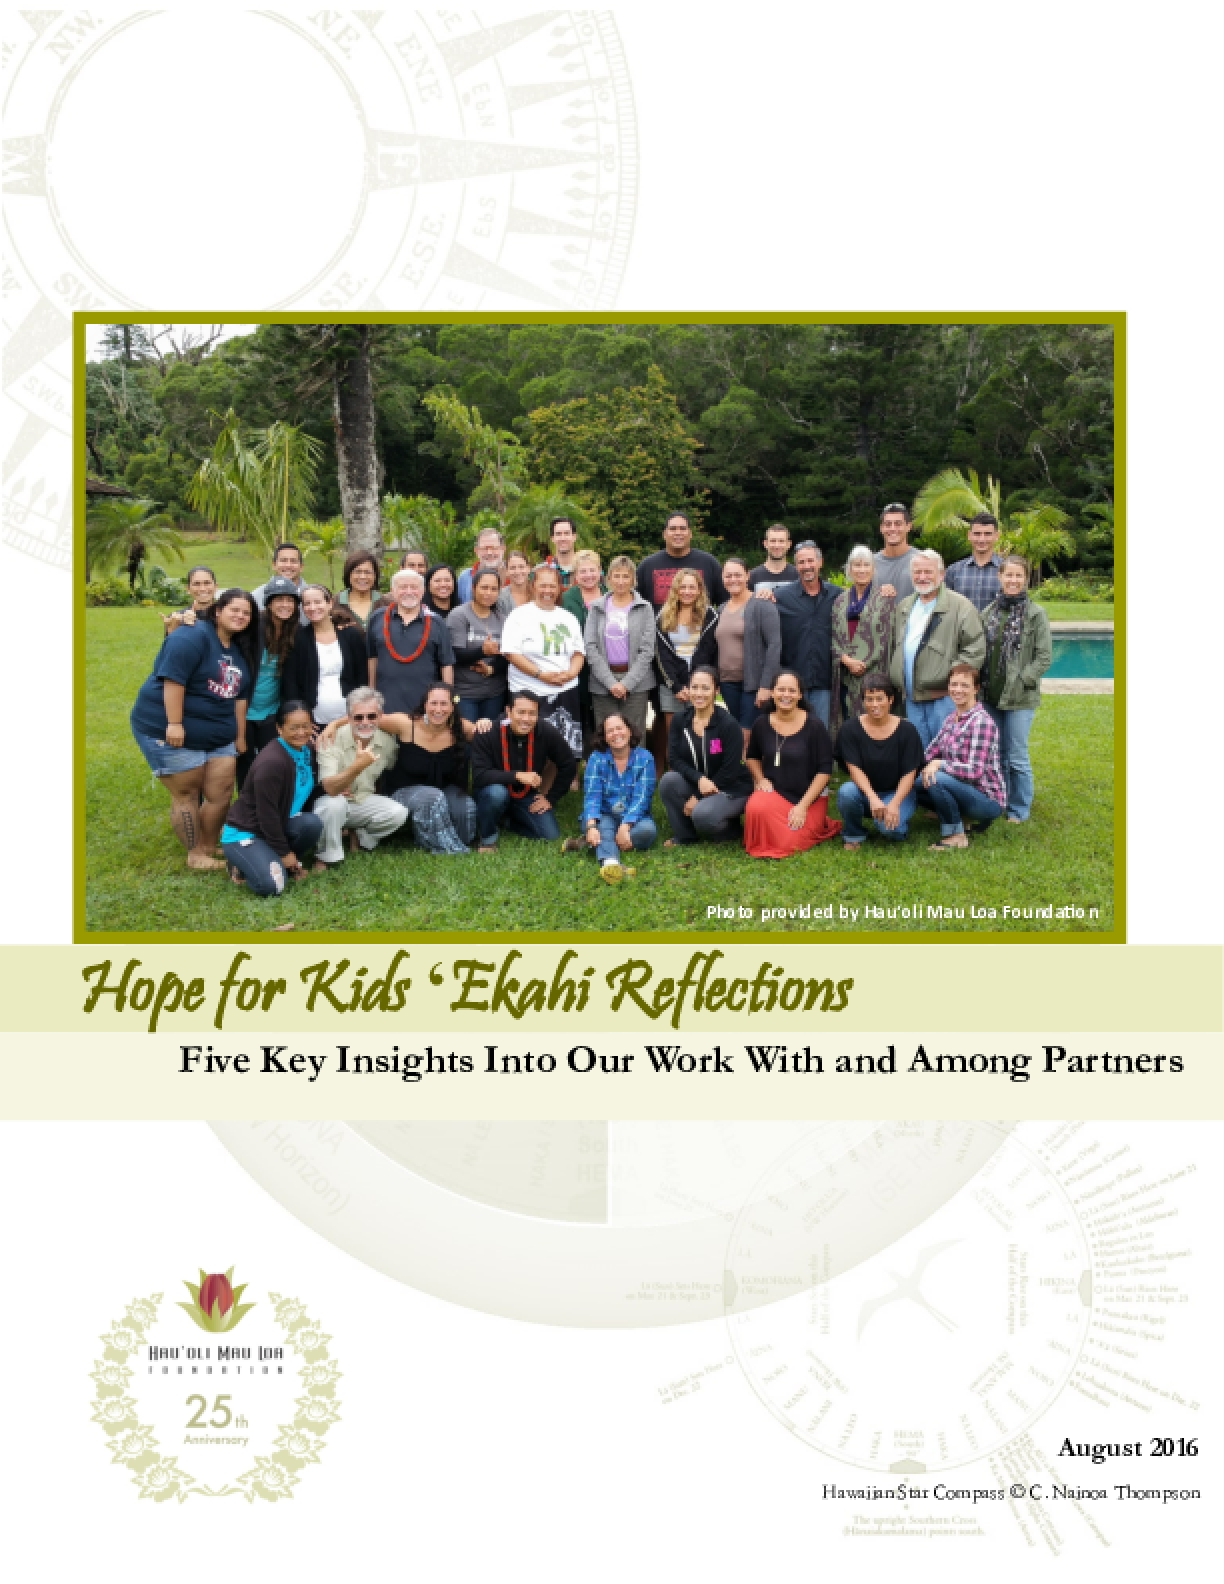 Hope For Kids 'Ekahi Reflections - Five Key Insights Into Our Work With and Among Pages